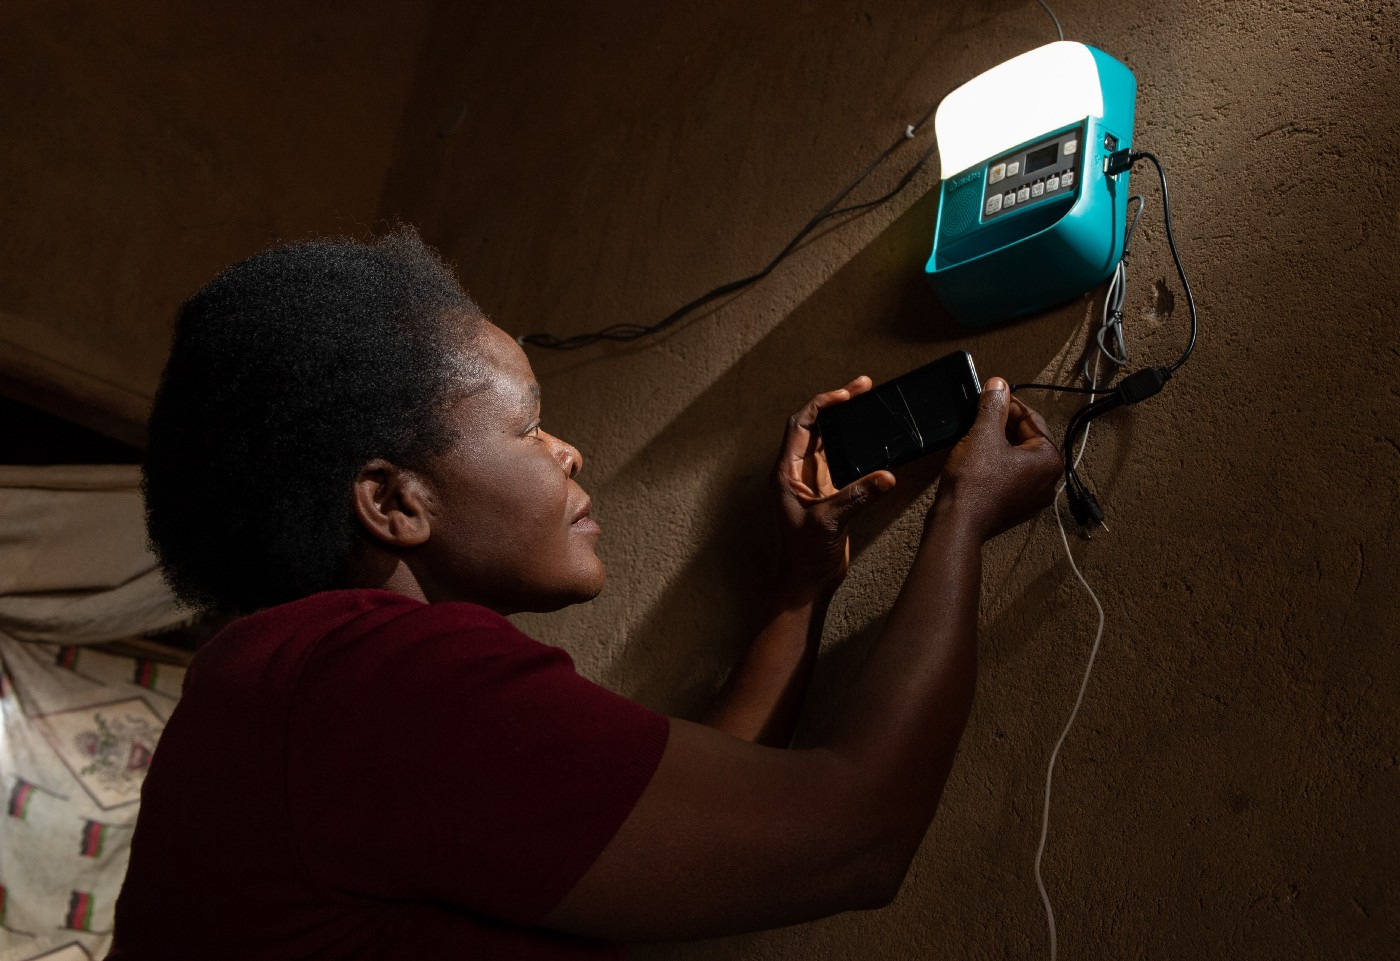 Most SHSs have small radio and mobile phone charging devices that are powered by a solar panel and battery.